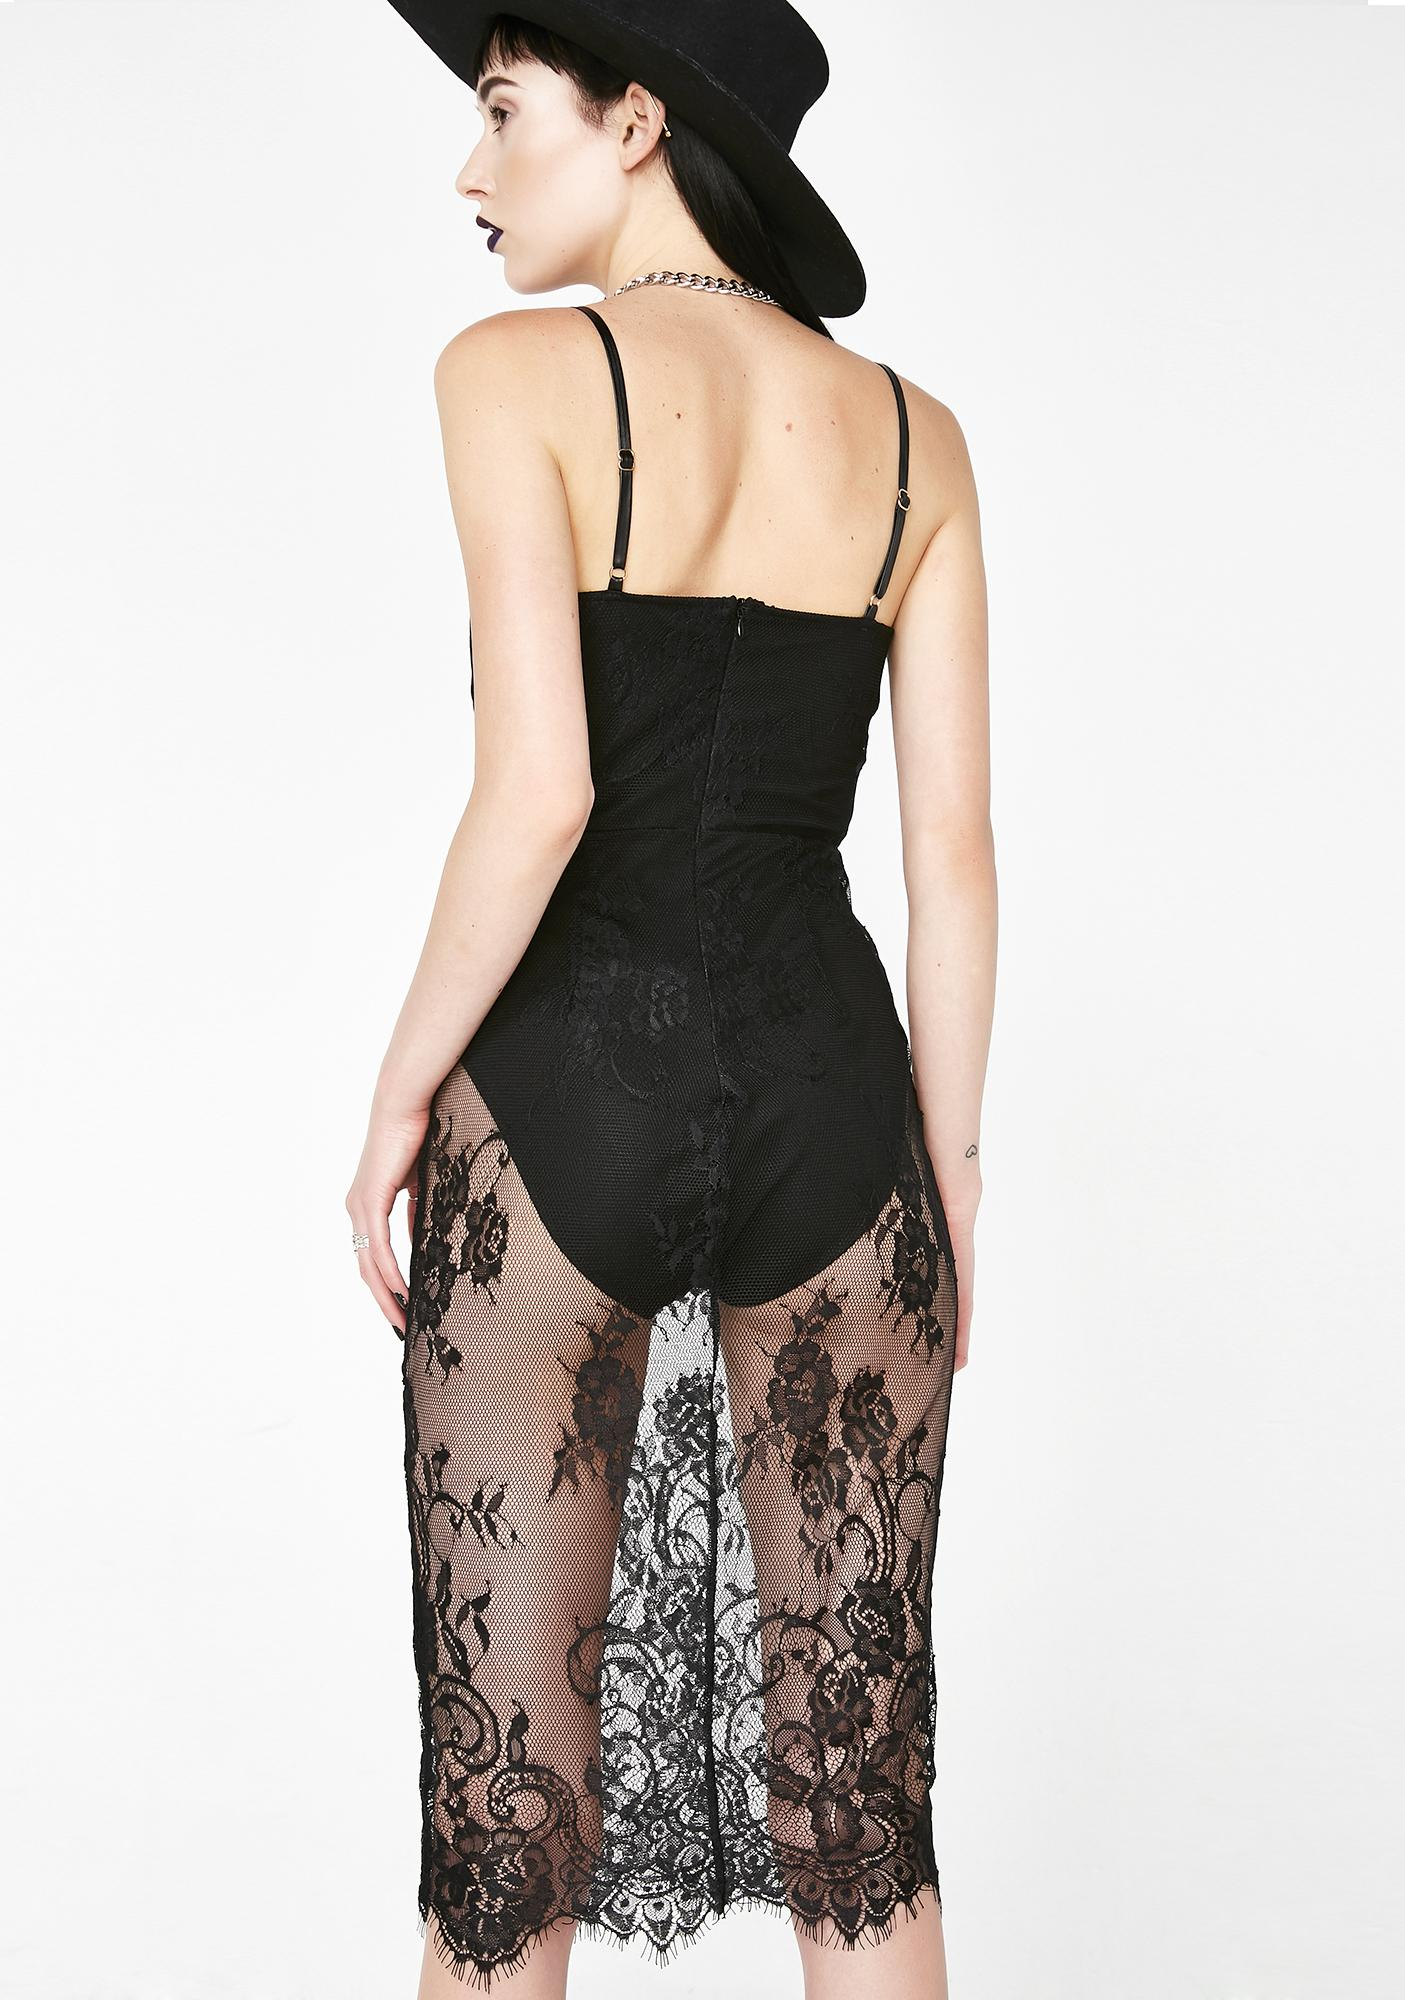 Lady Of The Night Lace Dress